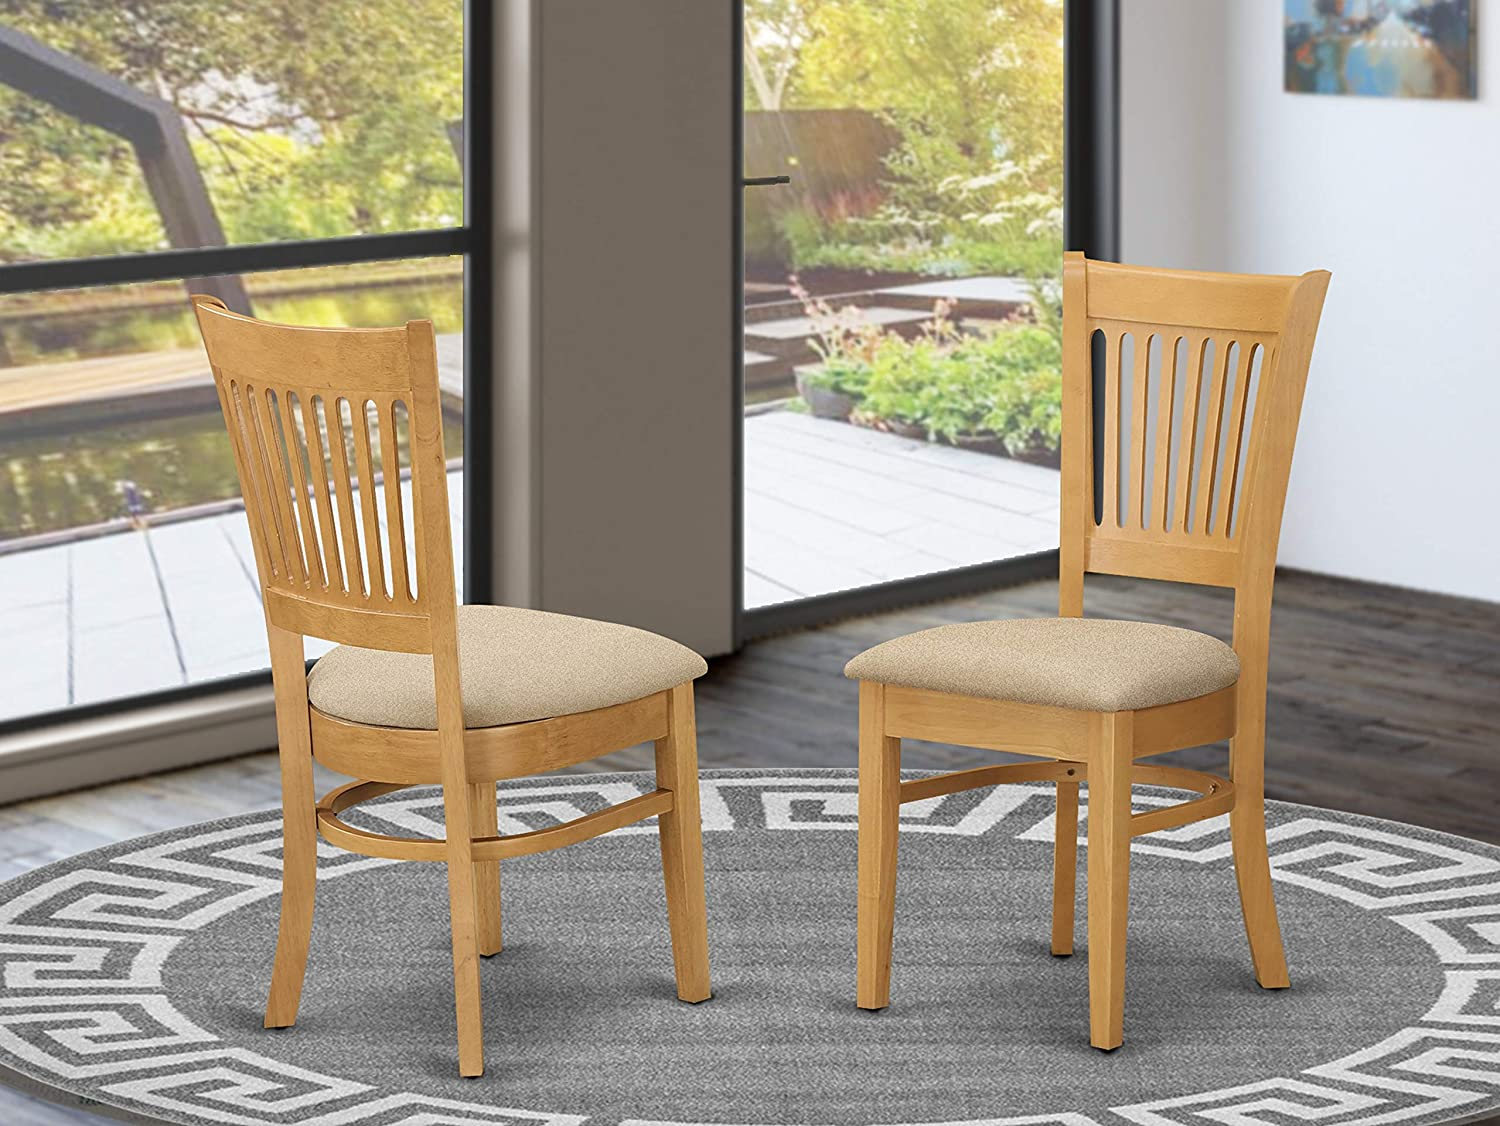 East West Furniture VAC-OAK-C Wonderful padded Parson Chair - Linen Fabric  Seat and Oak Hardwood Kitchen dining chair set of 8